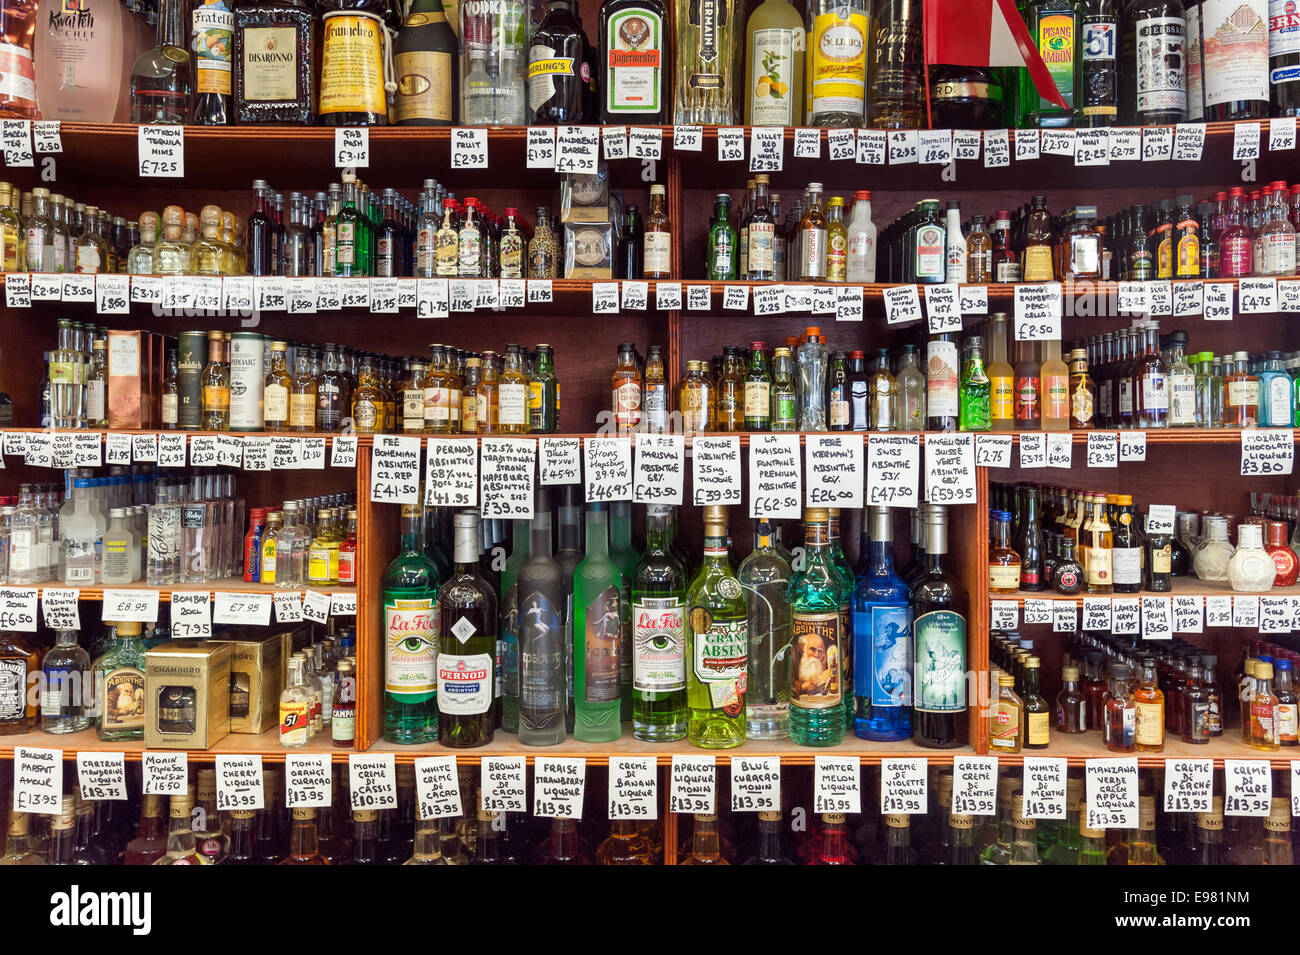 Wide selection of alcoholic drinks at Gerry's Wine & Spirits in Old Compton Street, Soho, London, England, - Stock Image